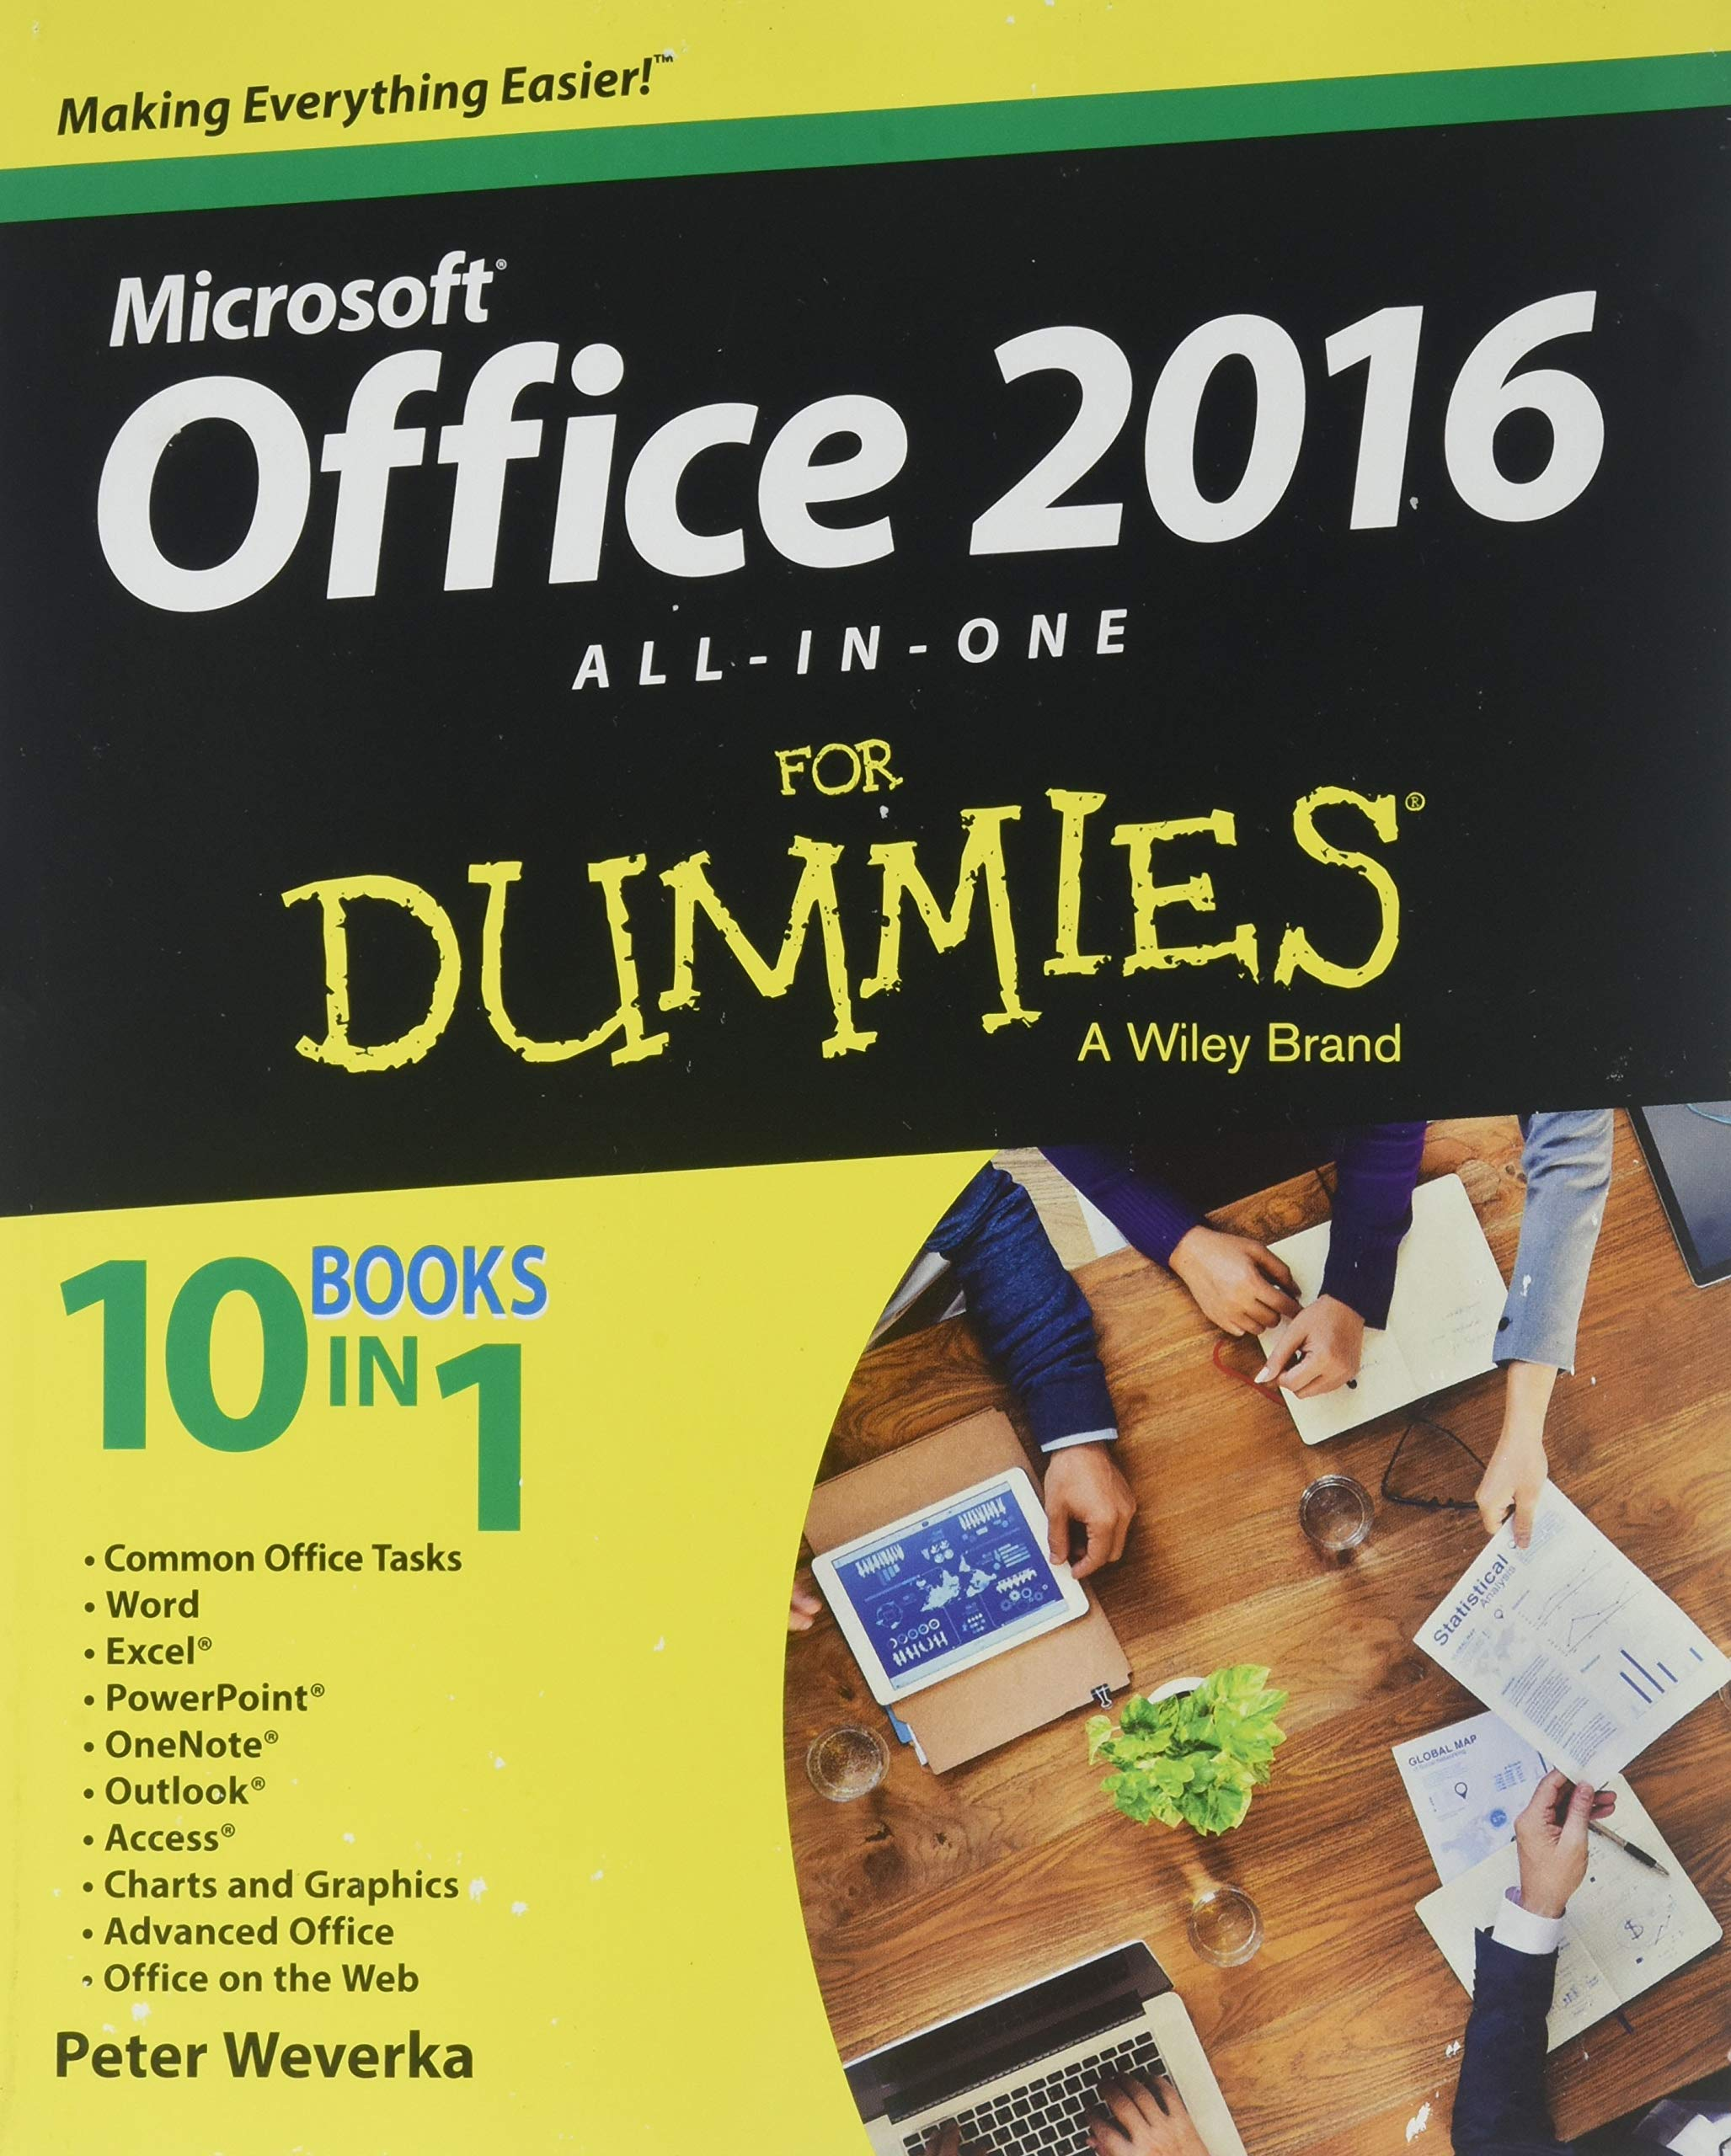 Office 2016 All-In-One For Dummies: Amazon co uk: Peter